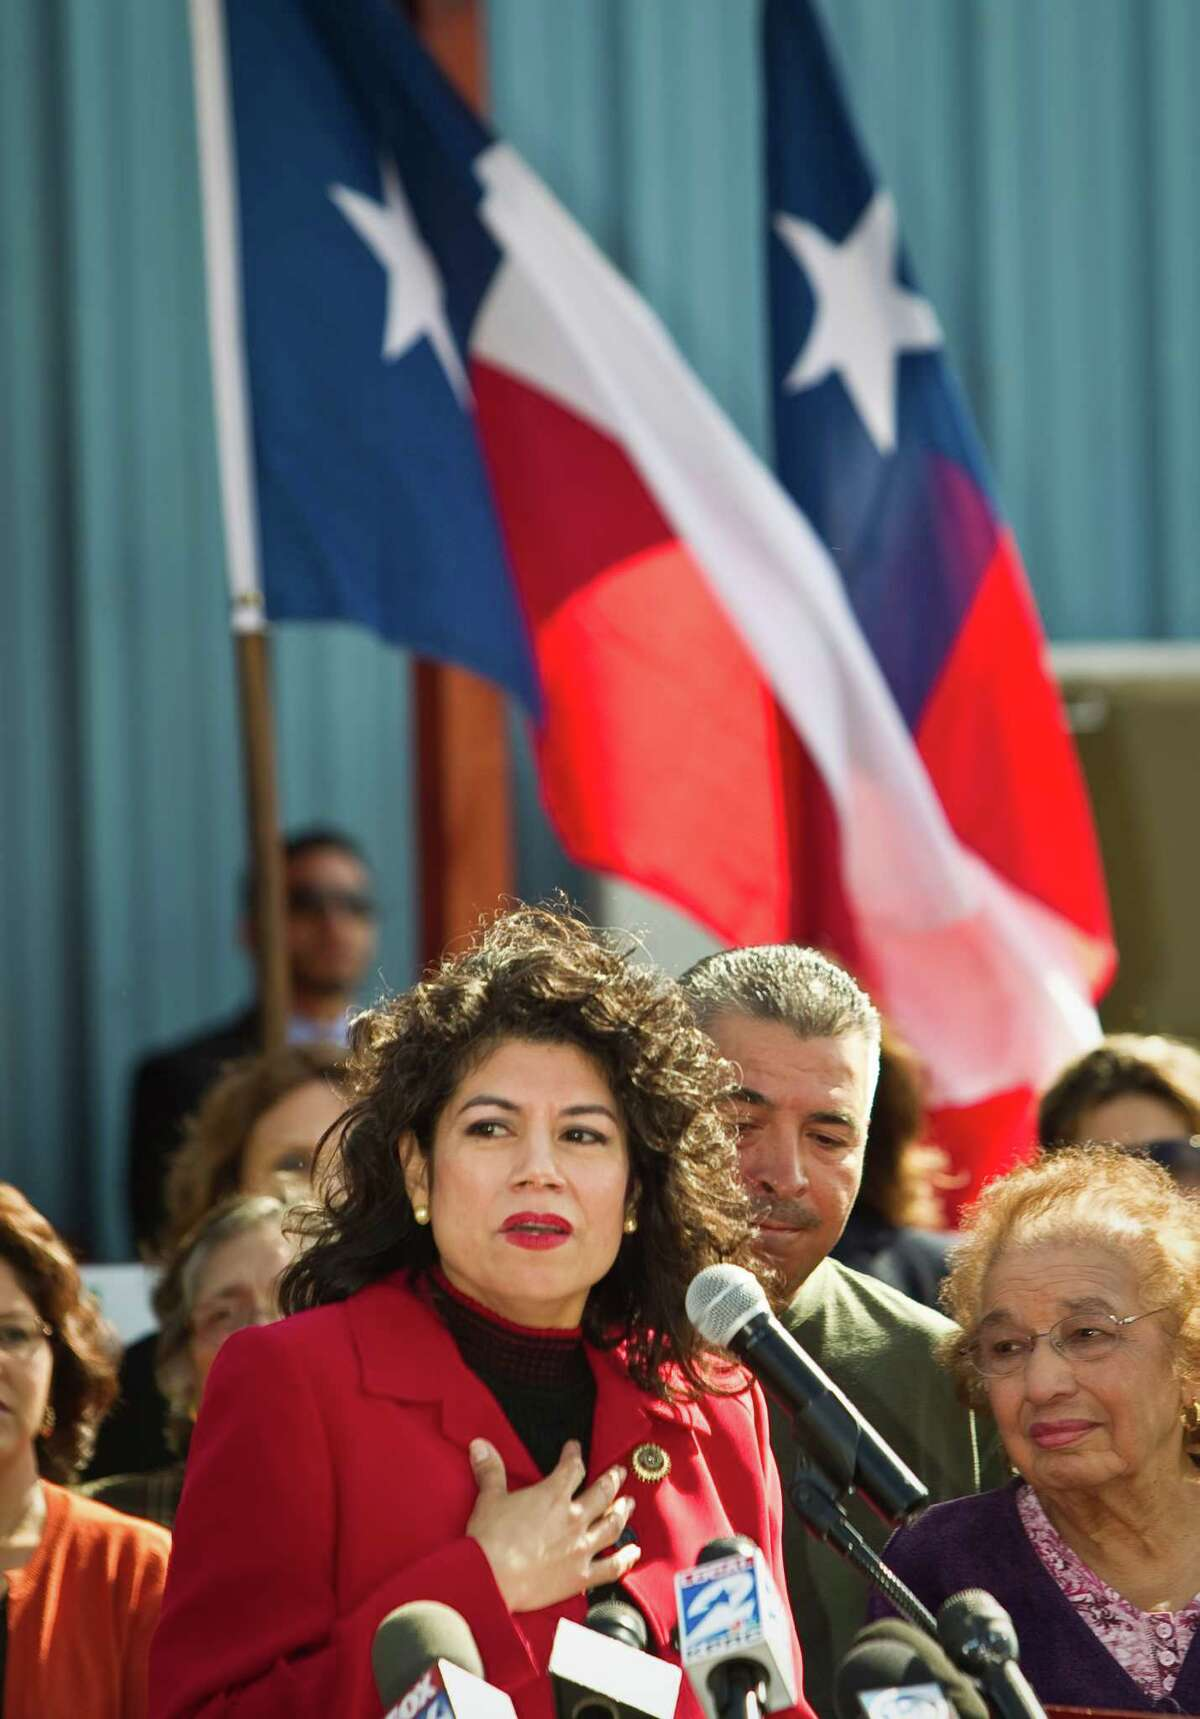 Rep. Carol Alvarado, D-Houston, works as a consultant for three large firms that compete for government contracts at the state and local level. She is running to fill the seat of the late Sen. Mario Gallegos.